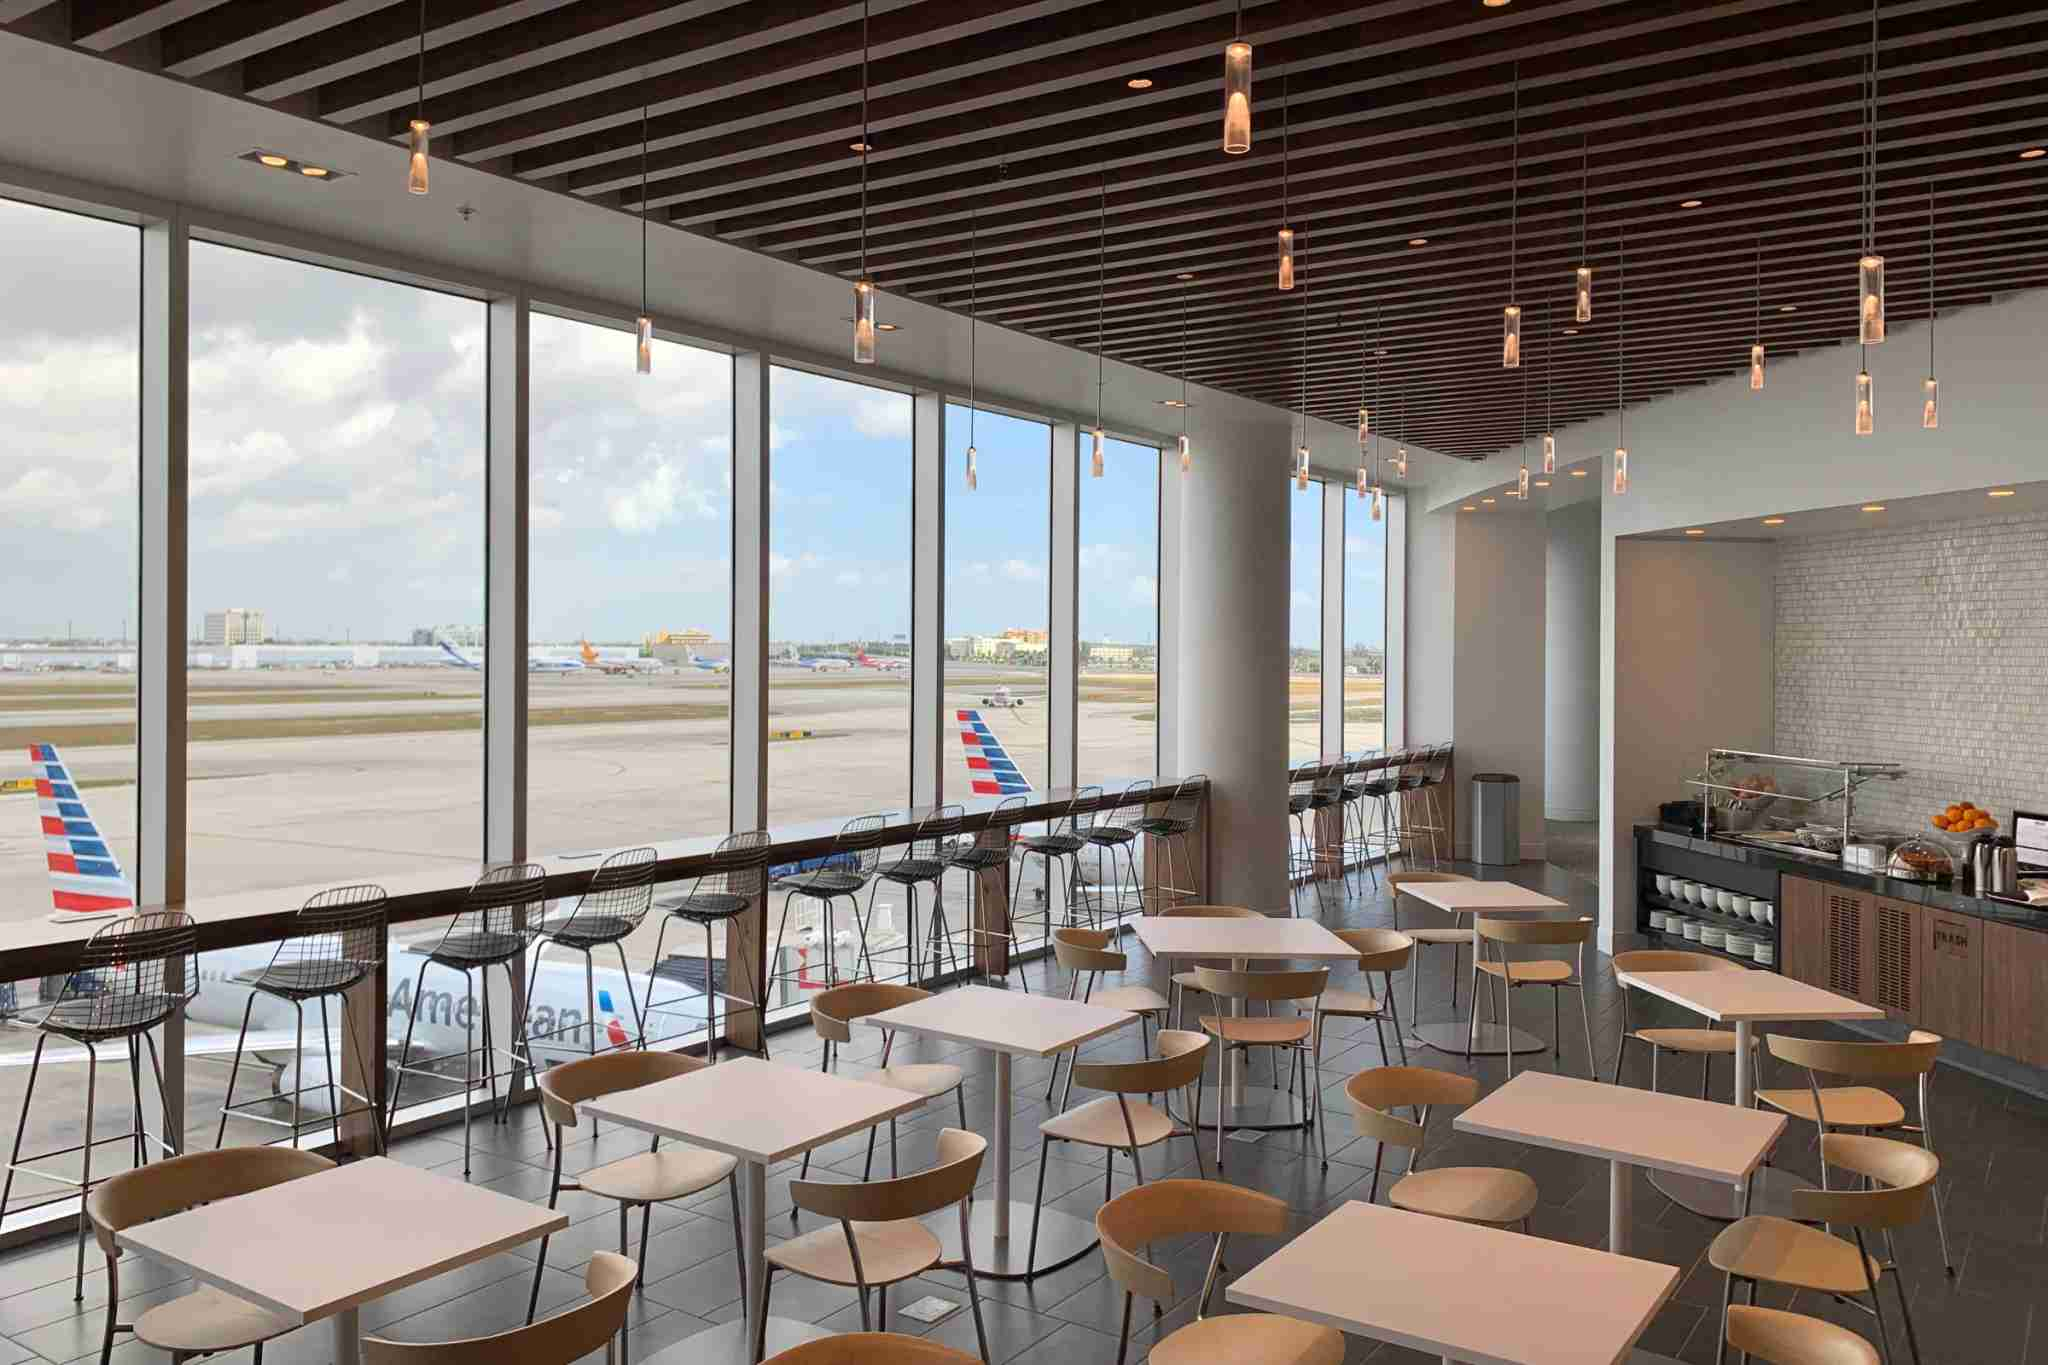 The Amex Centurion Lounge in Miami Airport. (Photo by Zach Honig/The Points Guy)